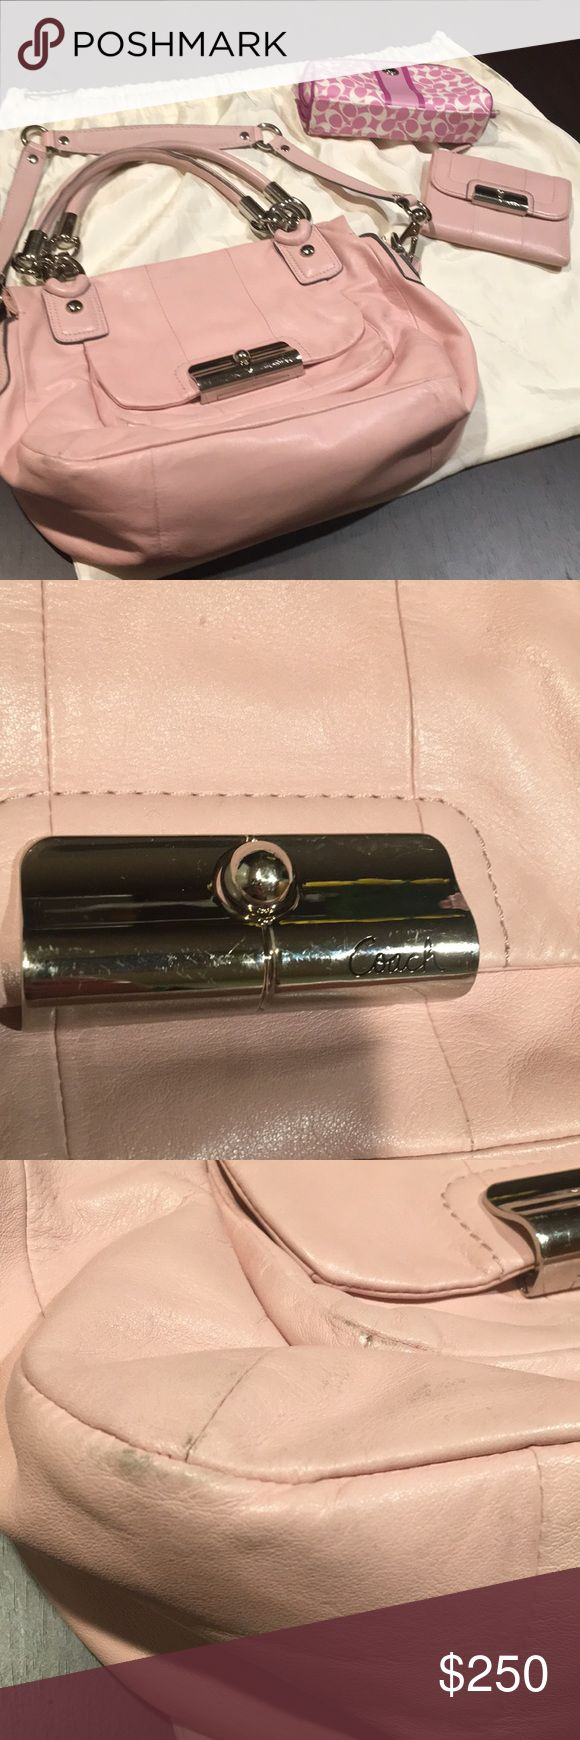 Pink Coach purse, wallet, and makeup bag Beautiful light pink Coach set. Item 1: Purse, can be used as top handle or shoulder. It has silver hardware. It has some wear ( please see pictures). The hardware has some scuff. Item 2: matching purse wallet in great used condition. Item 3: matching makeup bag. The outside looks great but the inside has some make up marks.  Comes with dust bag. Coach Bags Shoulder Bags